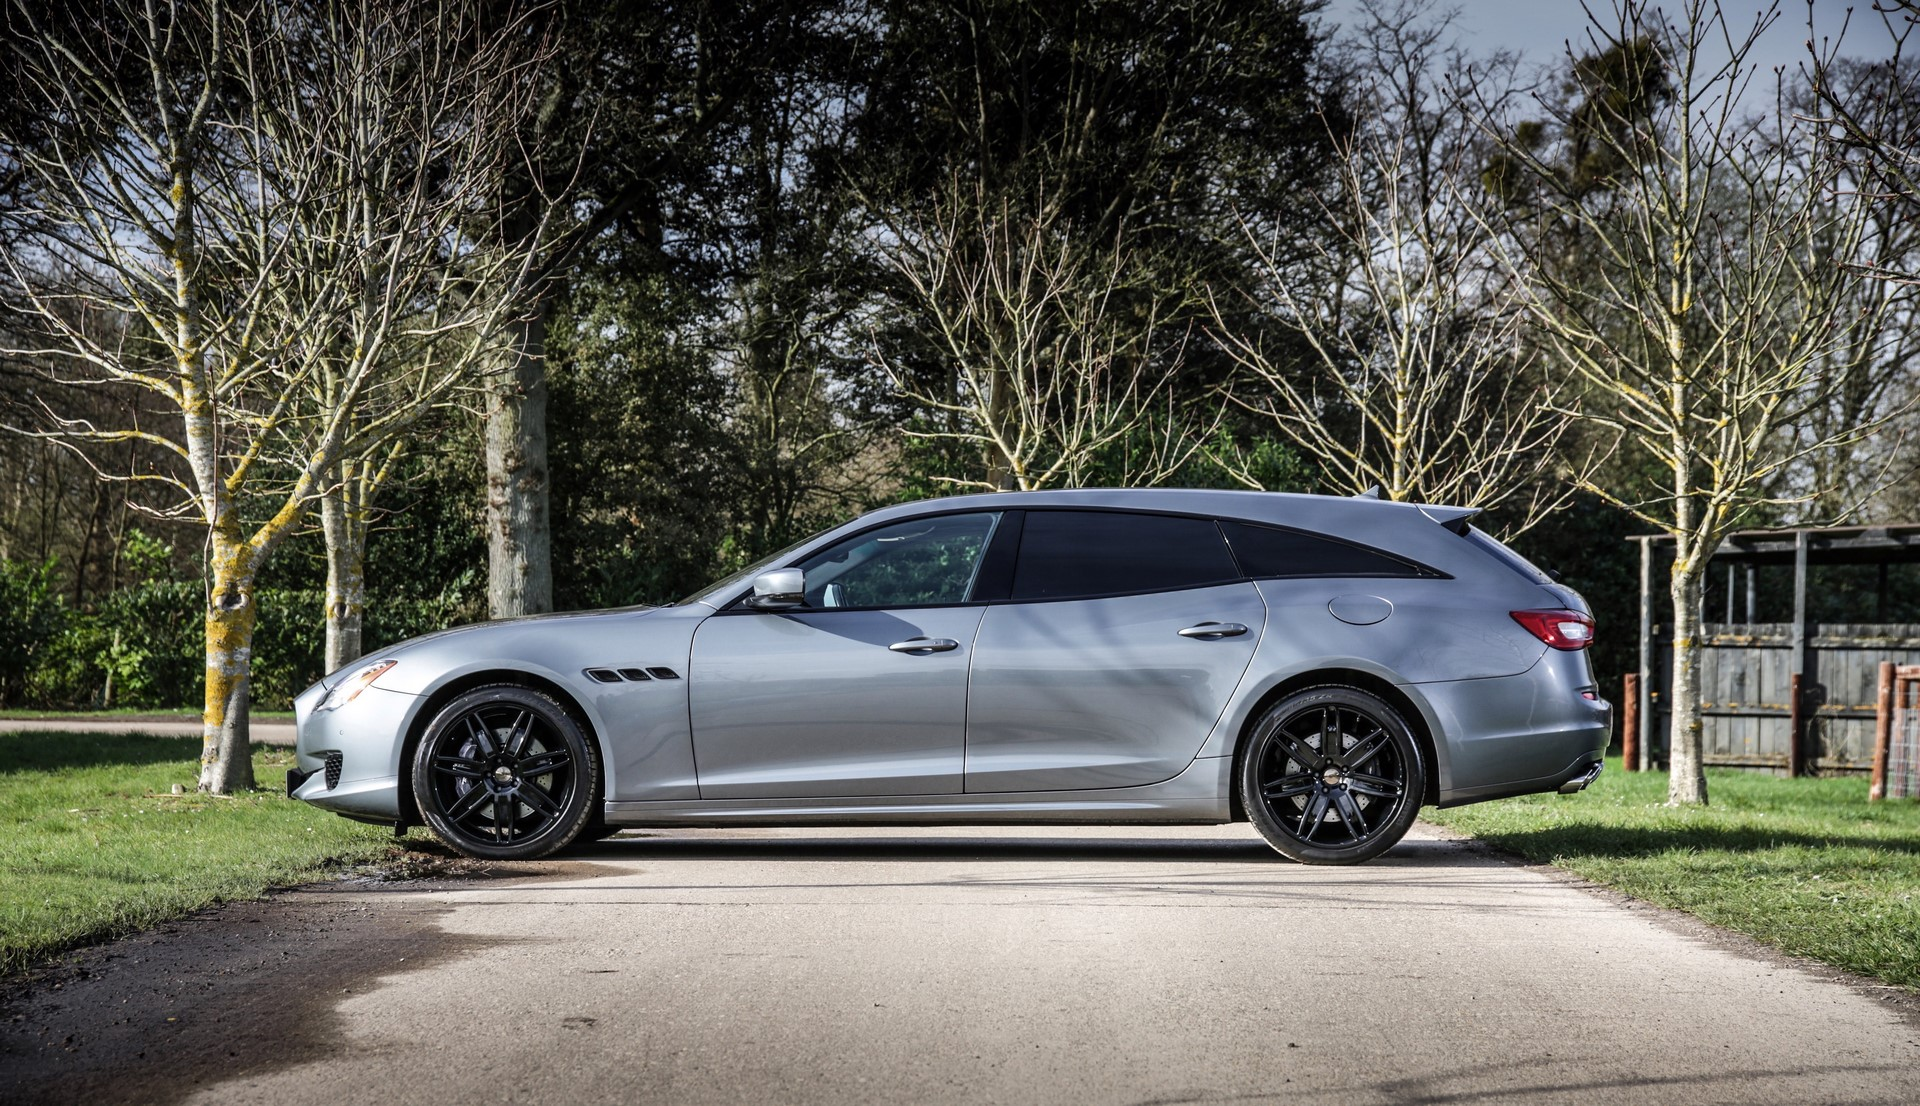 Maserati Quattroporte Shooting Brake (5)